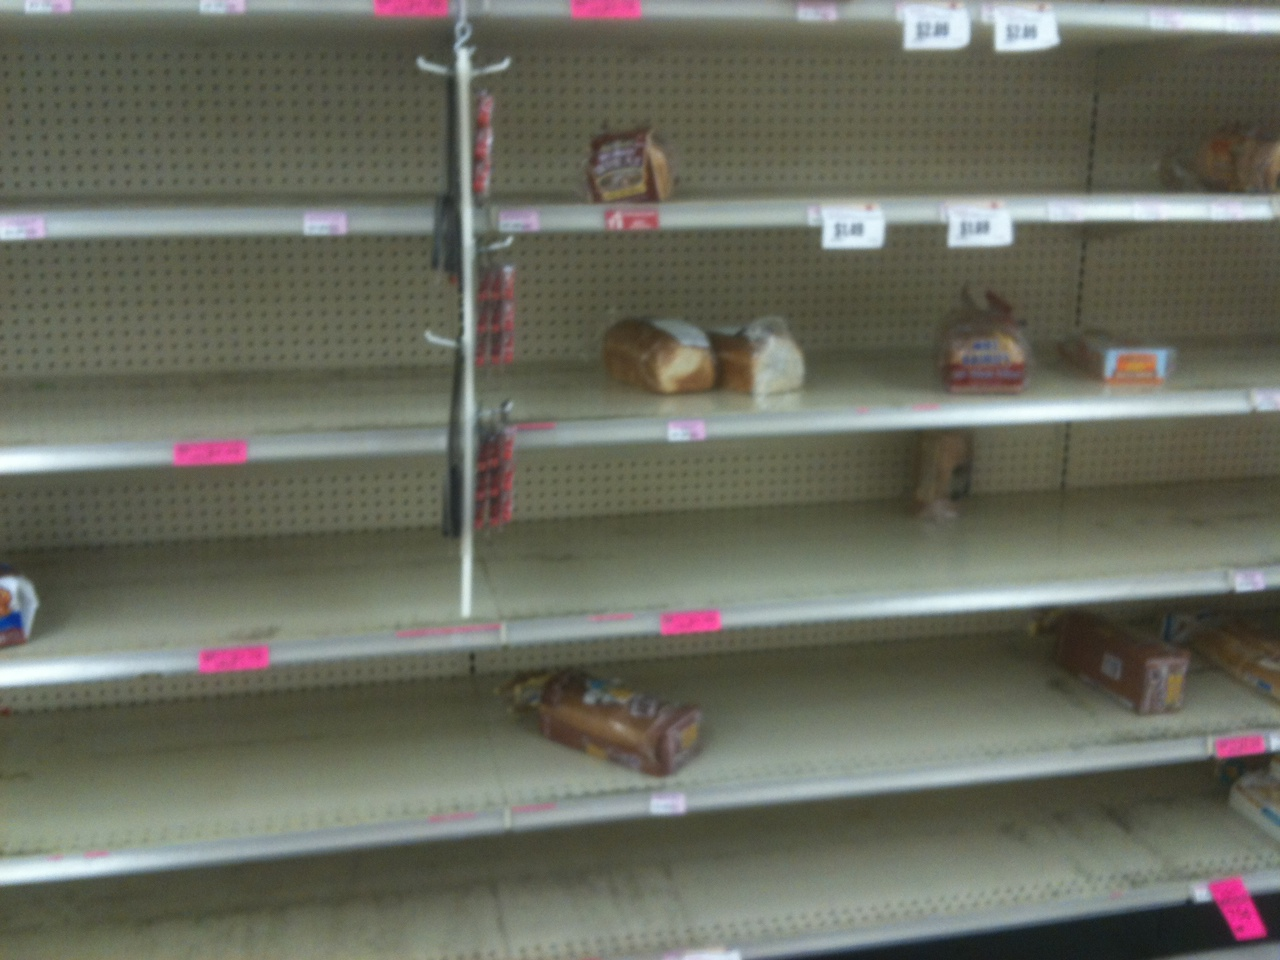 The bread aisle after severe ice warnings.